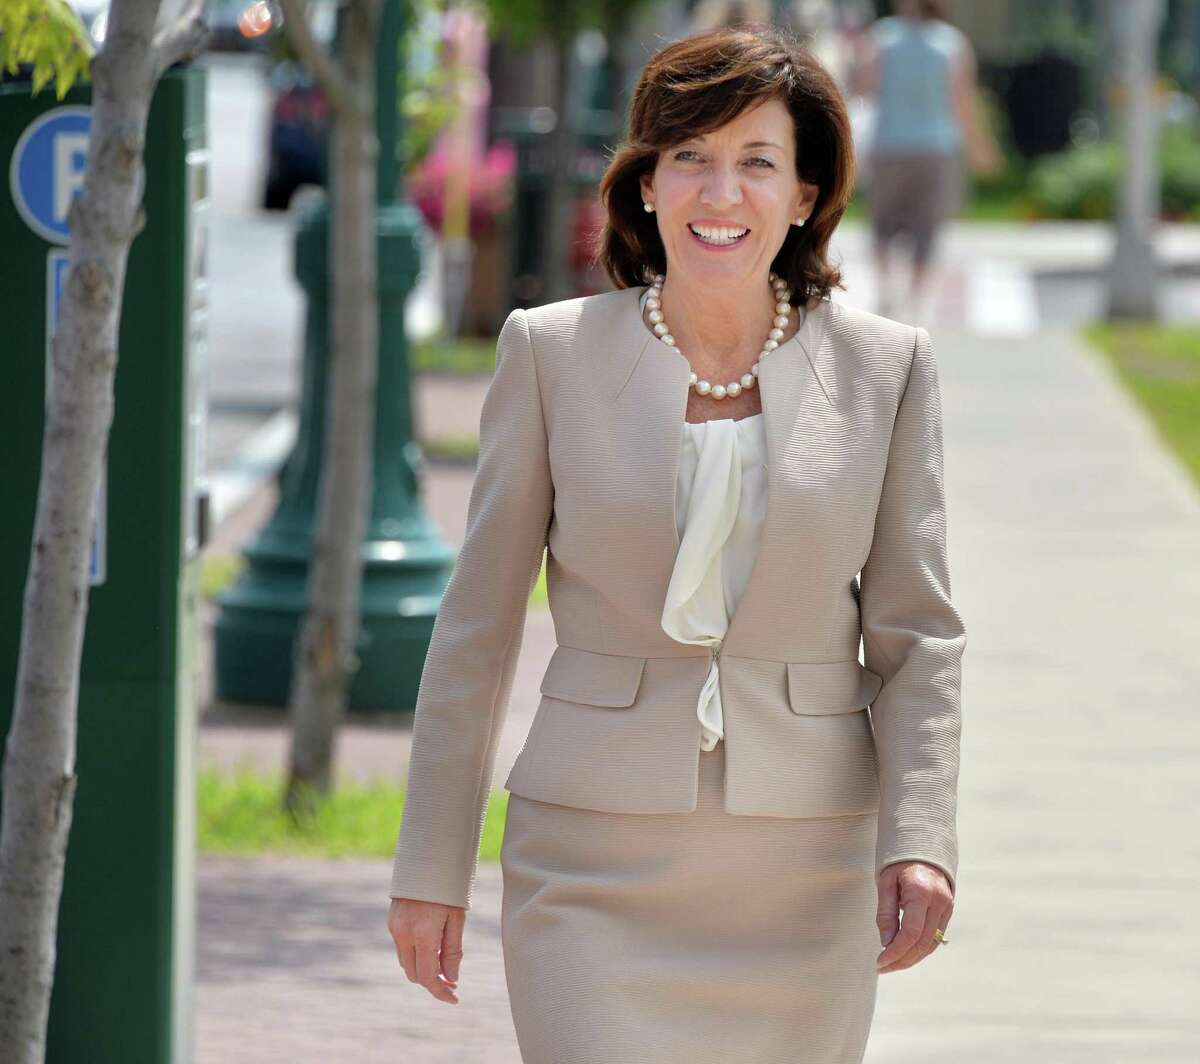 Lieutenant governor candidate Kathy Hochul on her way to a meeting with Schenectady Mayor Gary McCarthy and County Legislature Vice Chair Karen Johnson Friday Aug. 8, 2014, in Schenectady, N.Y. (John Carl D'Annibale / Times Union)